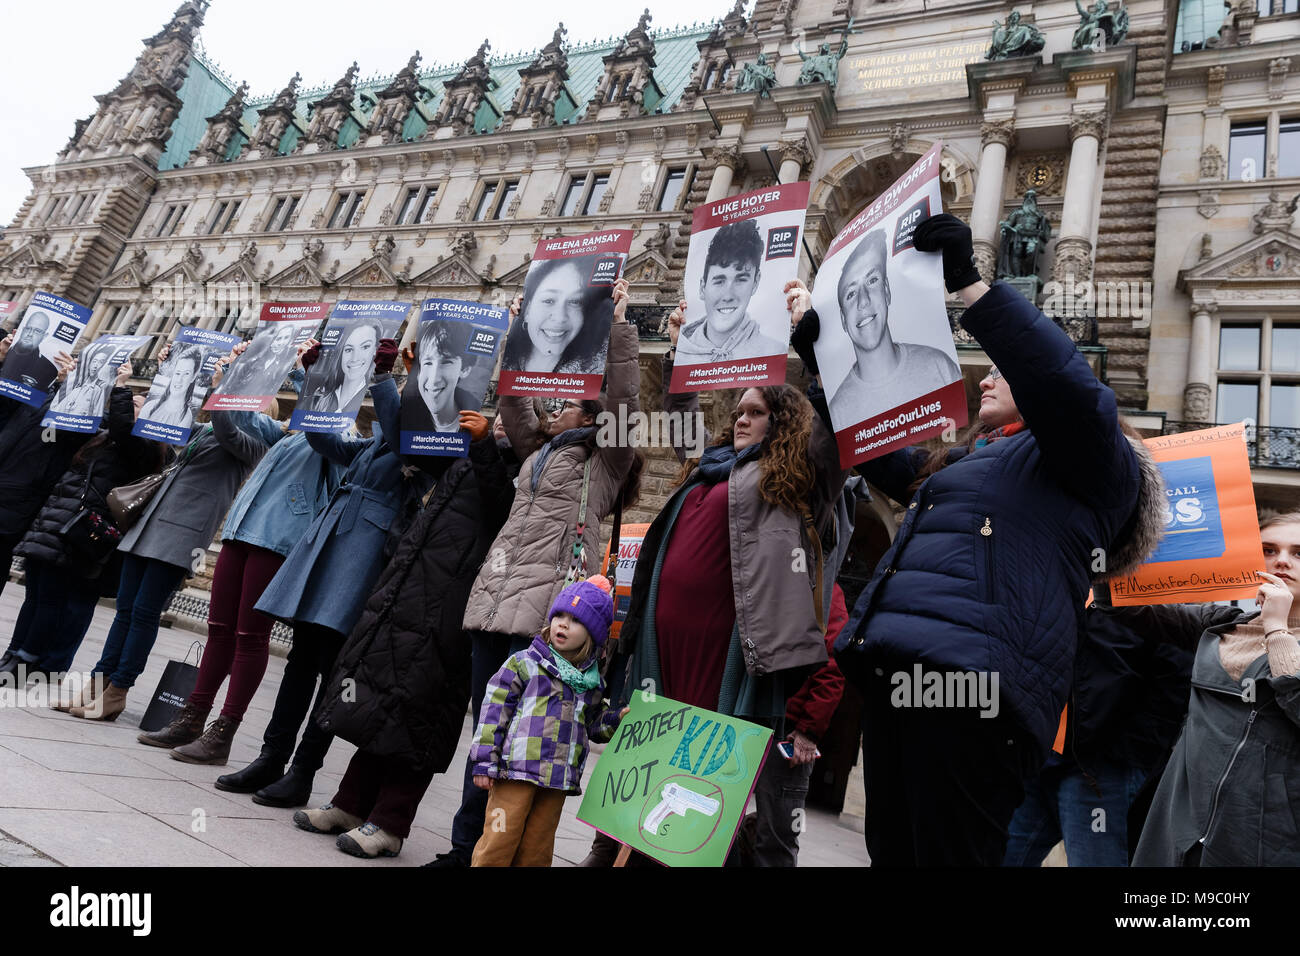 """24 March 2018, Germany, Hamburg: Americans and Germans protesting with pictures of people killed during school shootings in the US in front of City Hall during the """"March for our Lives"""" for stricter gun control in the US. Photo: Markus Scholz/dpa Stock Photo"""